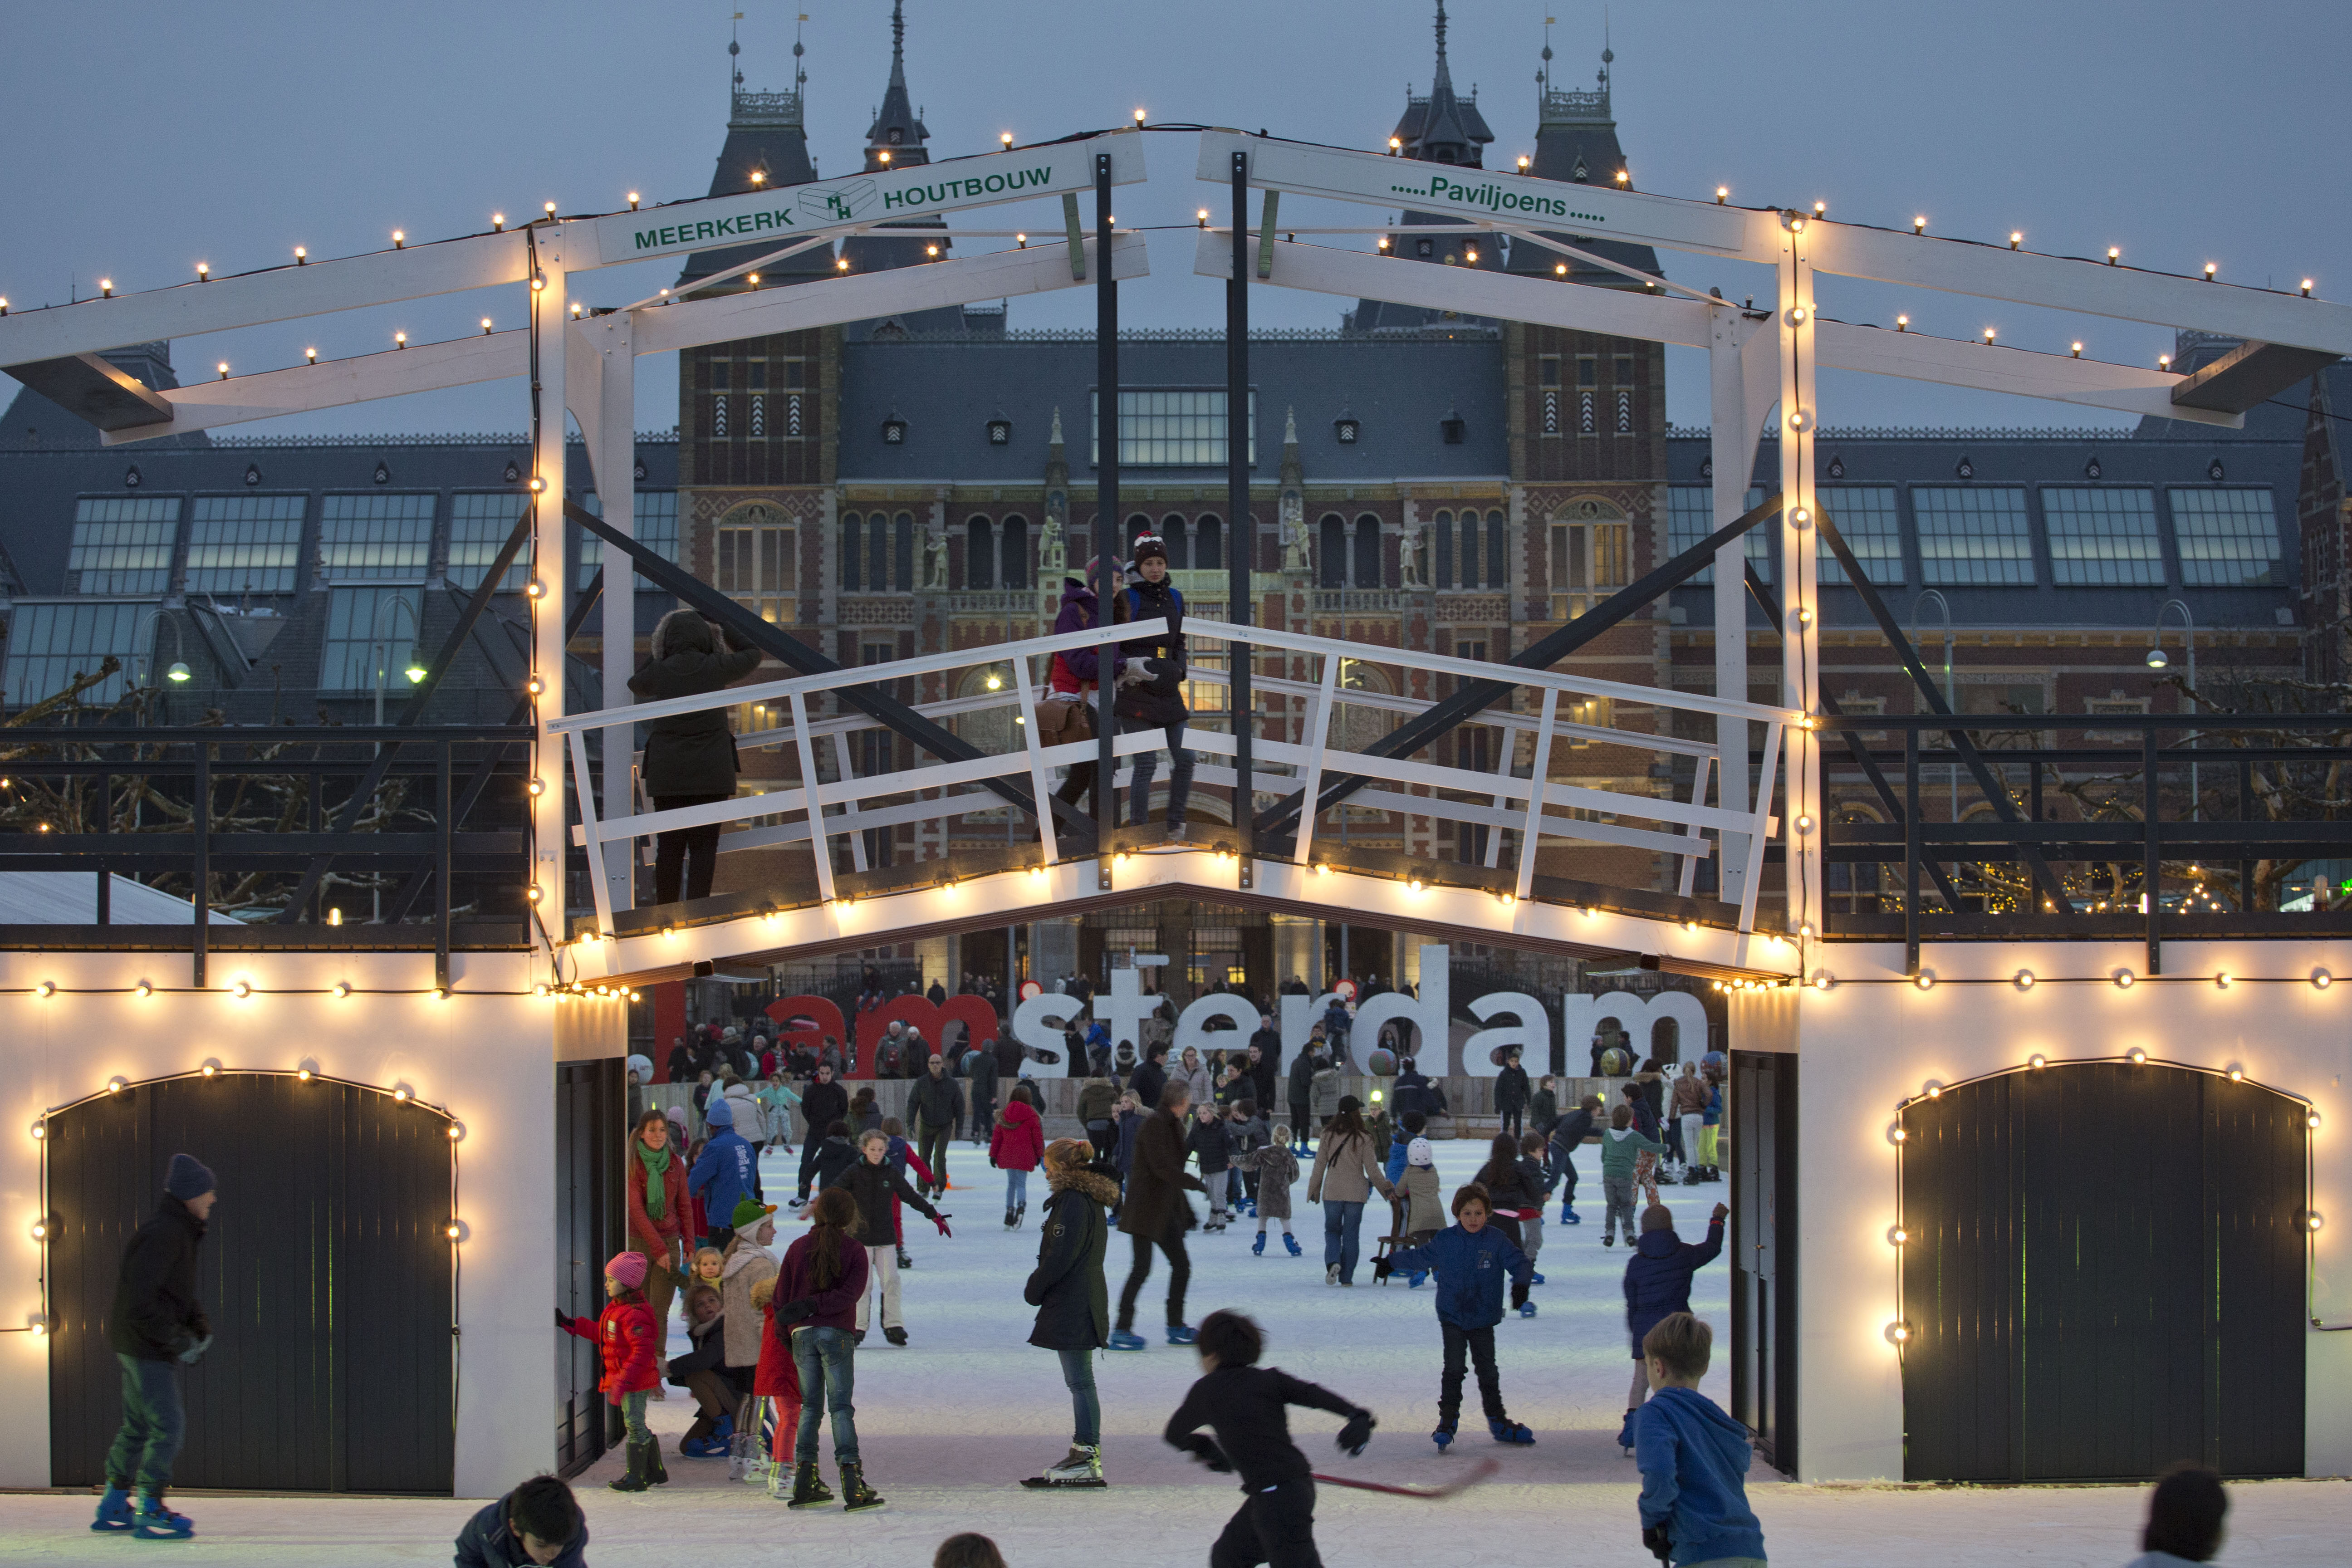 Skaters pass under a decorative draw bridge constructed over a pond that serves as an once rink in the winter months outside the newly renovated Rijksmuseum, rear, in Amsterdam, Netherlands, Tuesday, Dec. 3, 2013. (AP Photo/Peter Dejong)